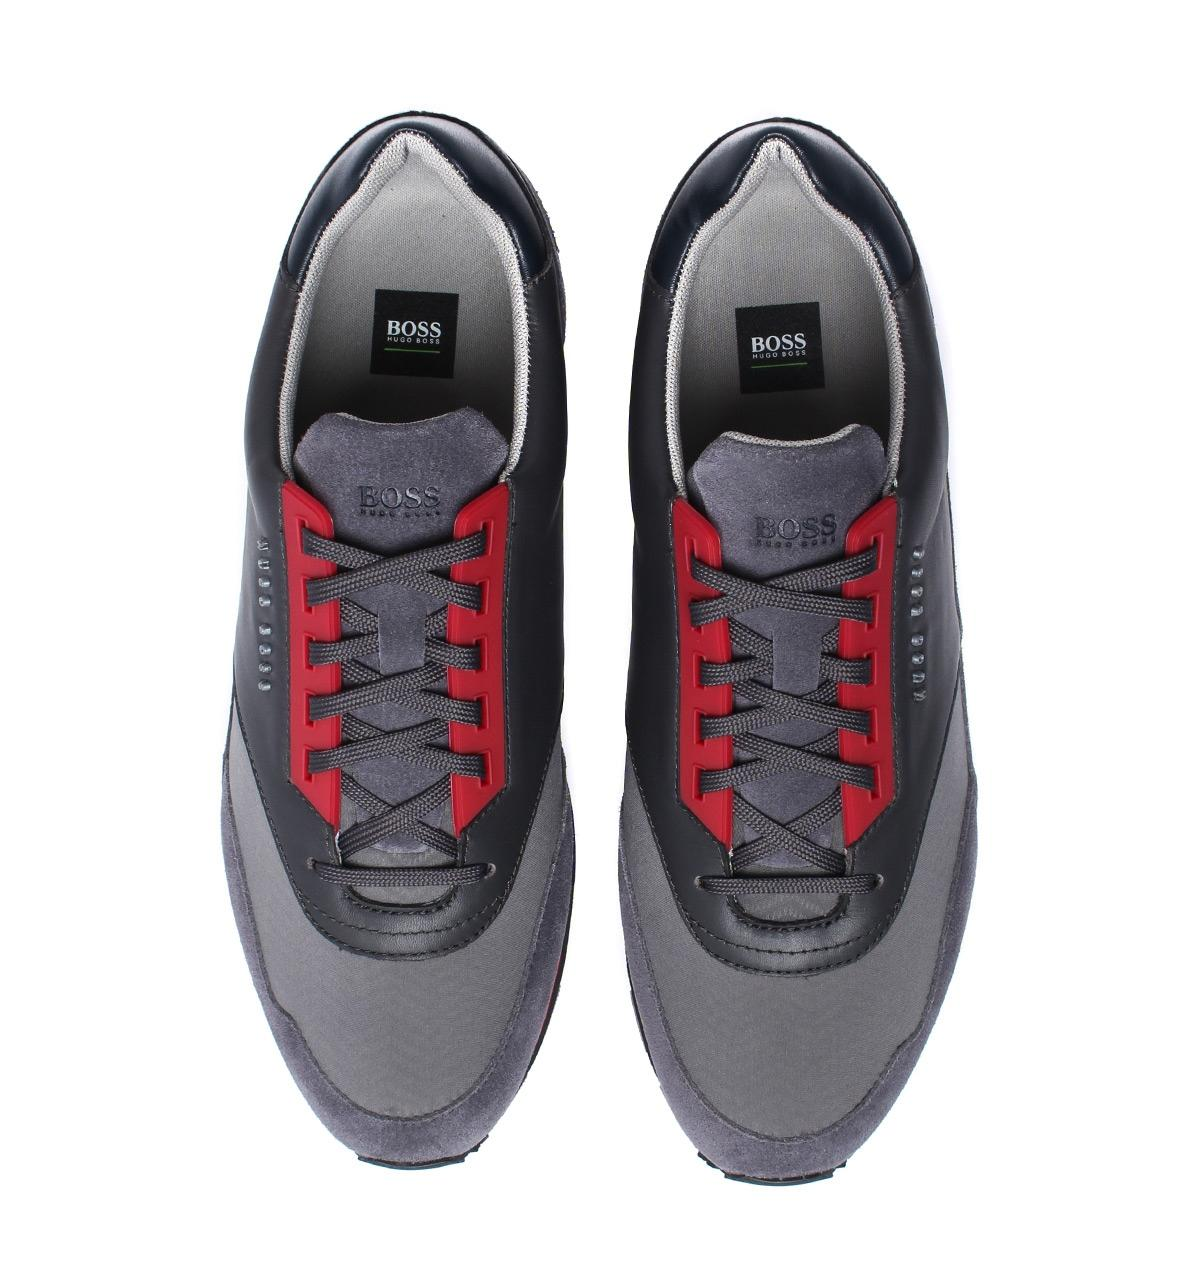 boss zephir trainers \u003e Up to 75% OFF